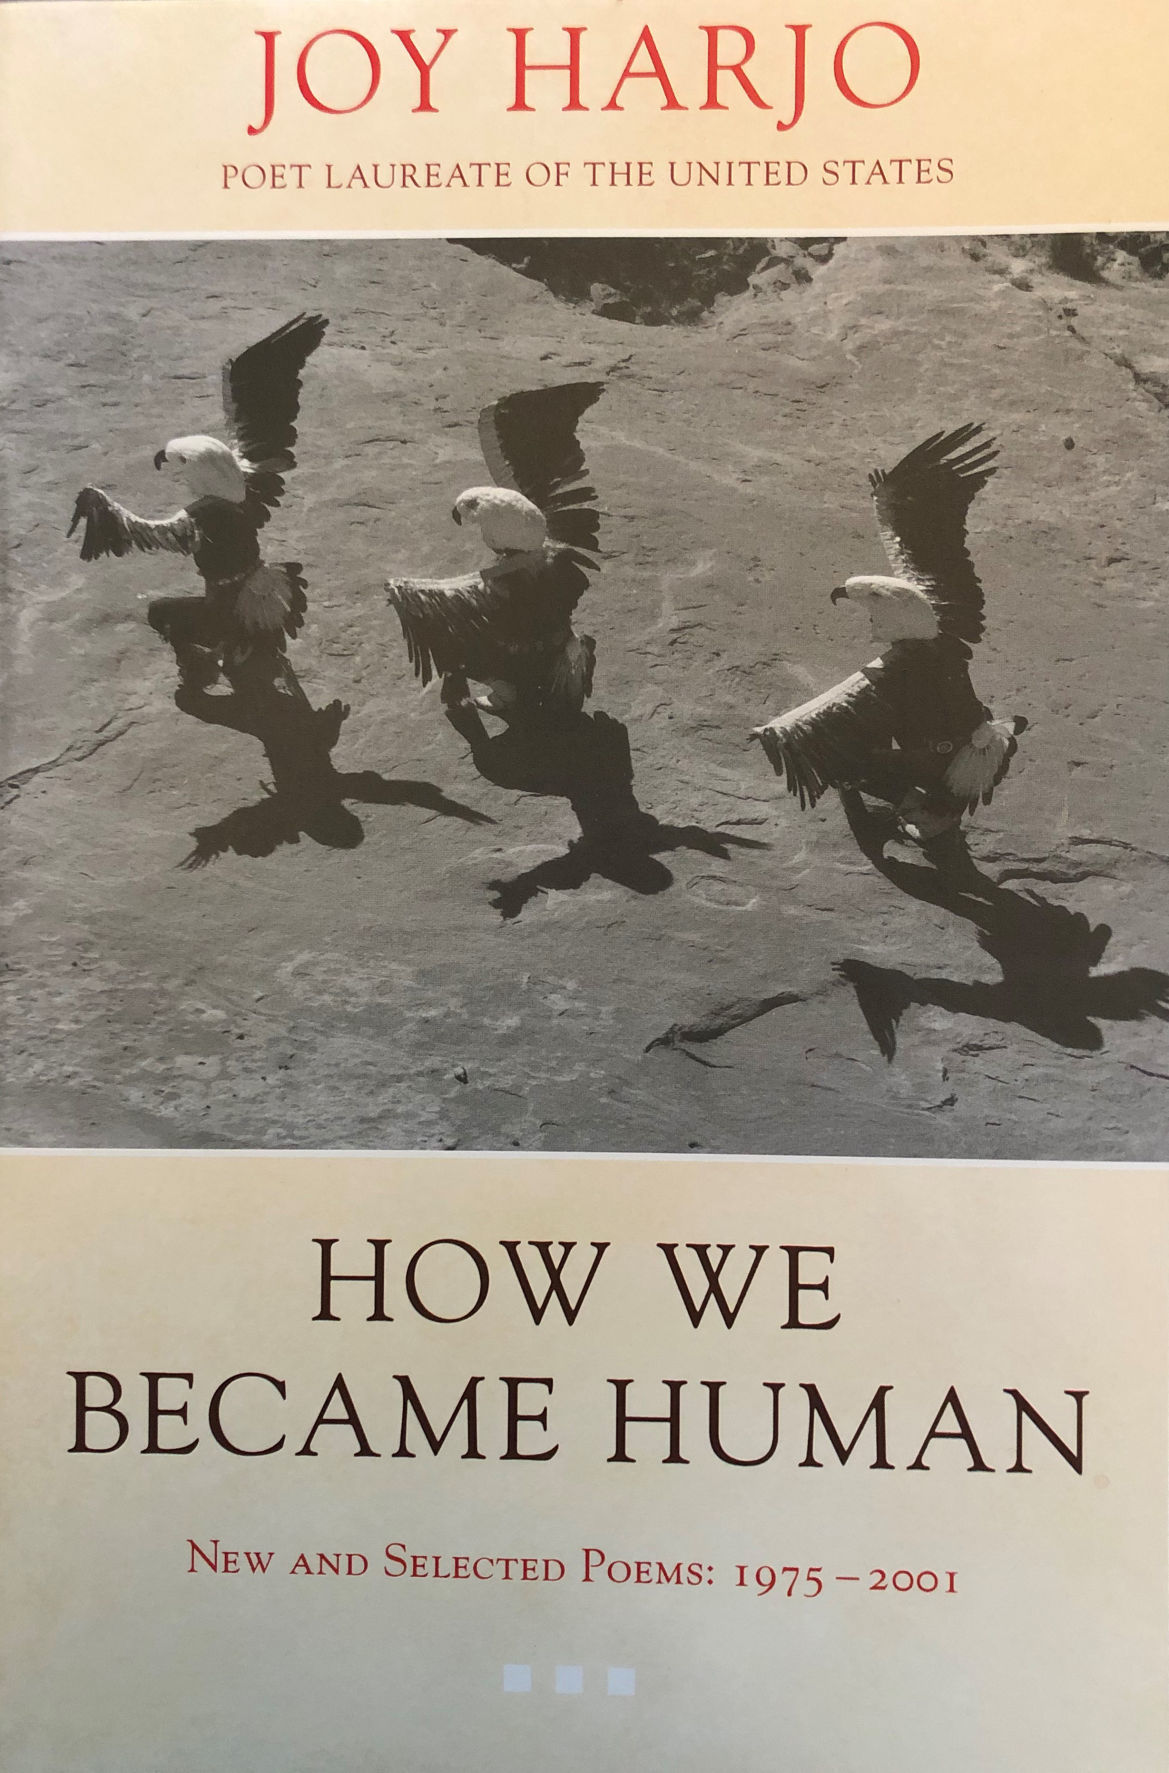 'How We Became Human'